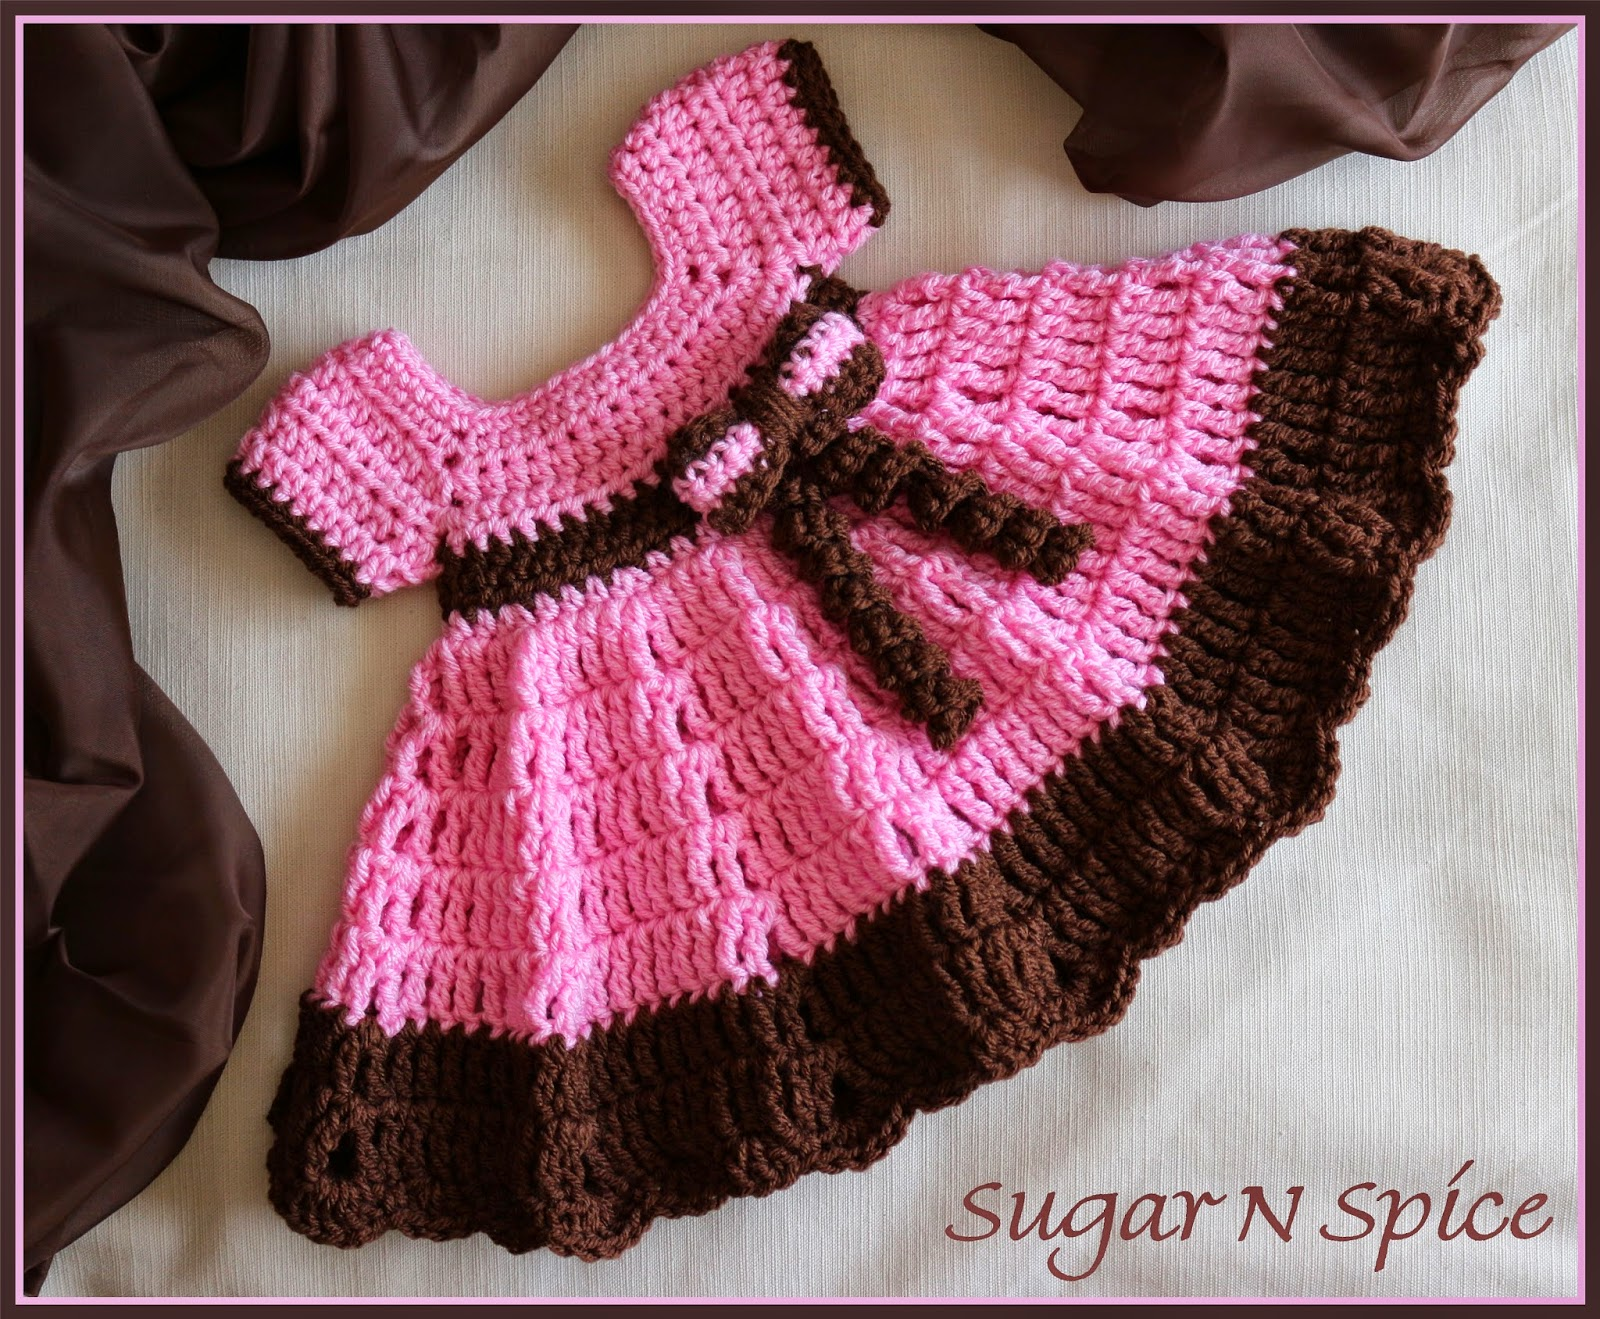 Easy Crochet Baby Dress Patterns-Dress Up Your Pretty Little Princess